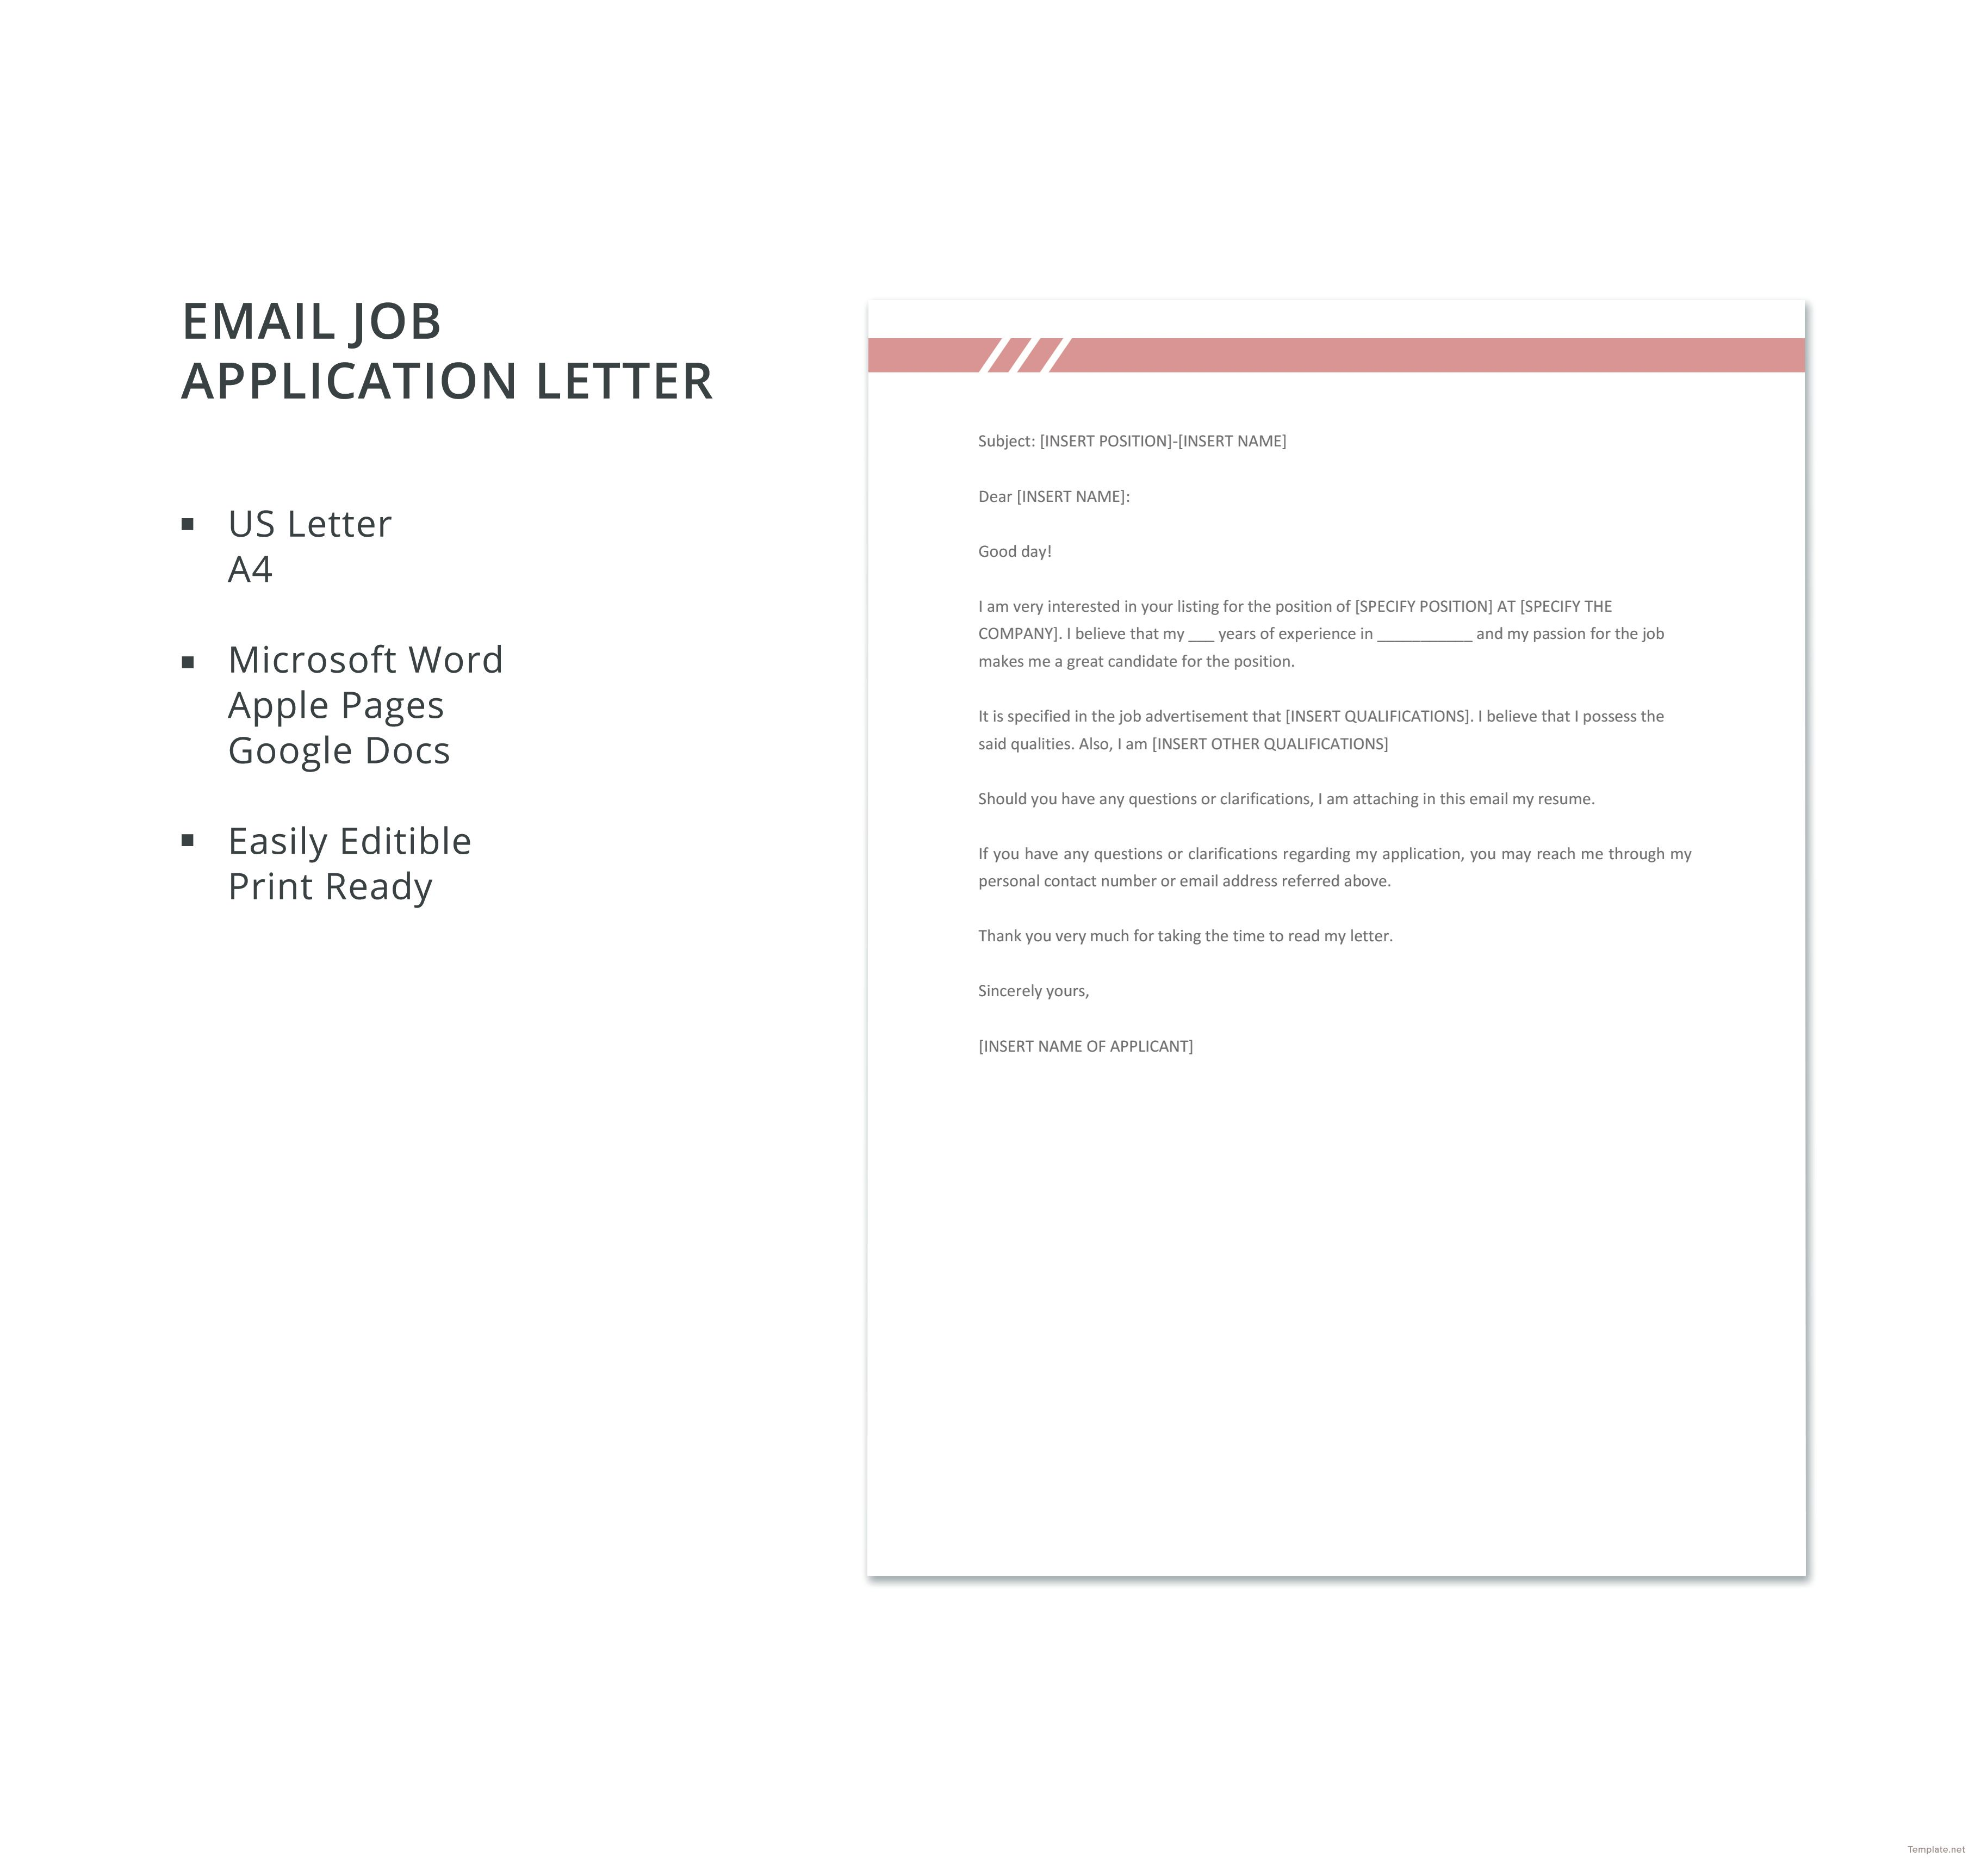 free email job application letter (with images auto electrician resume legal office assistant retail manager cv template